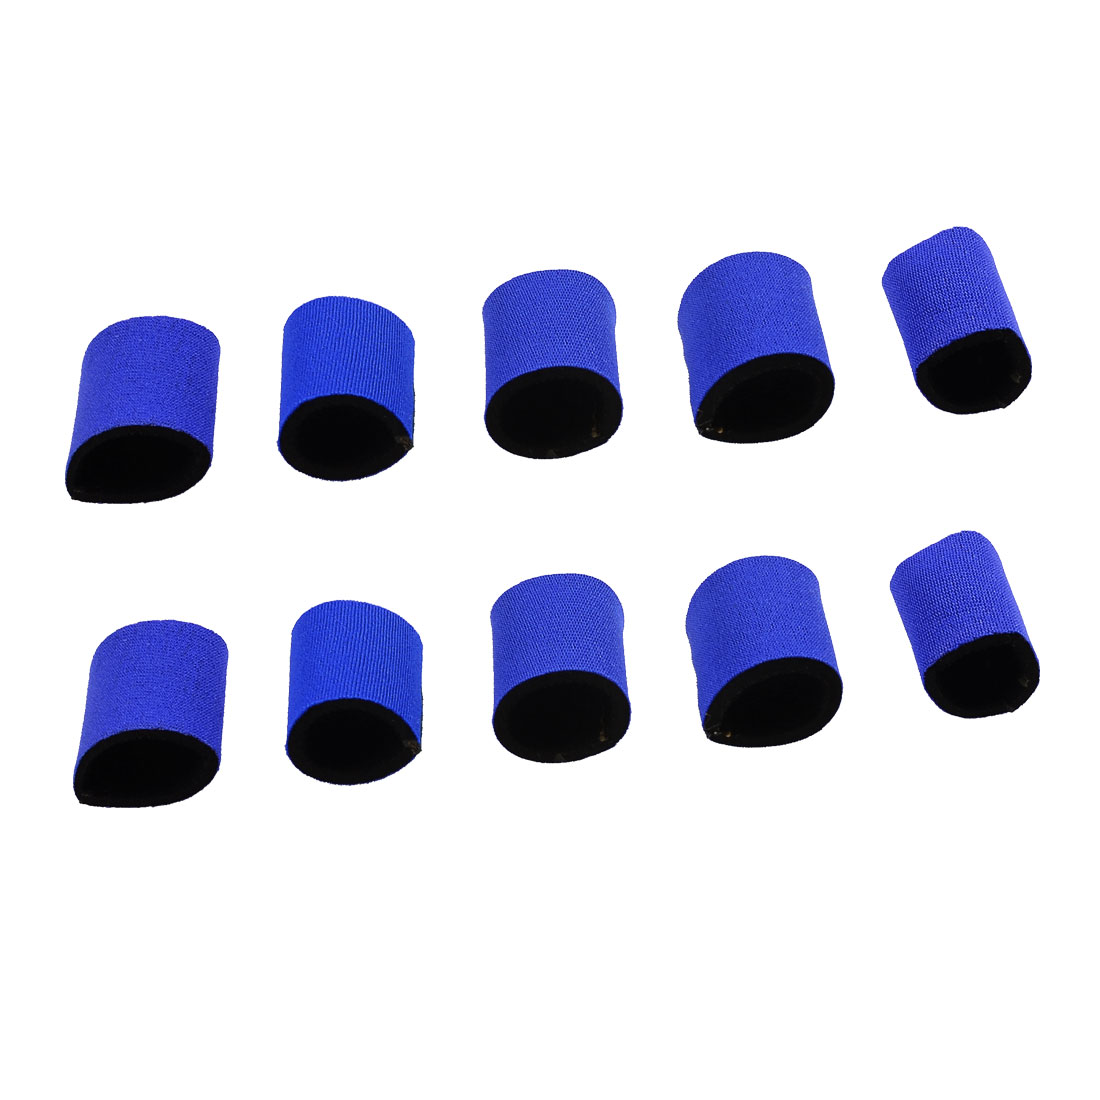 10 Pcs Volleyball Sports Neoprene Finger Sleeve Cover Blue